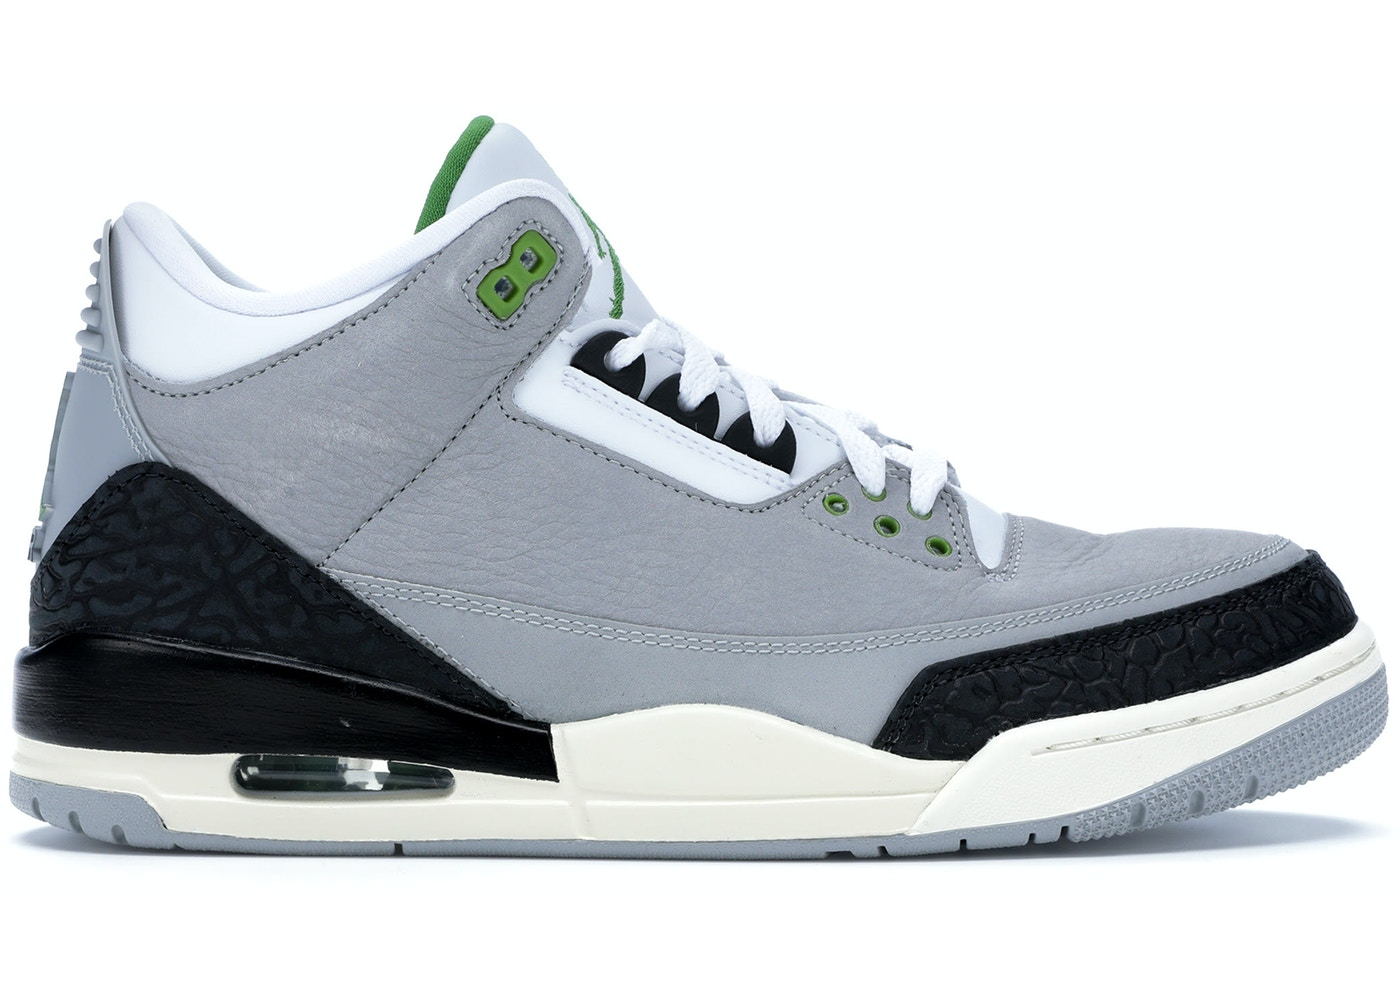 finest selection 8df5c dc828 Jordan 3 Retro Chlorophyll